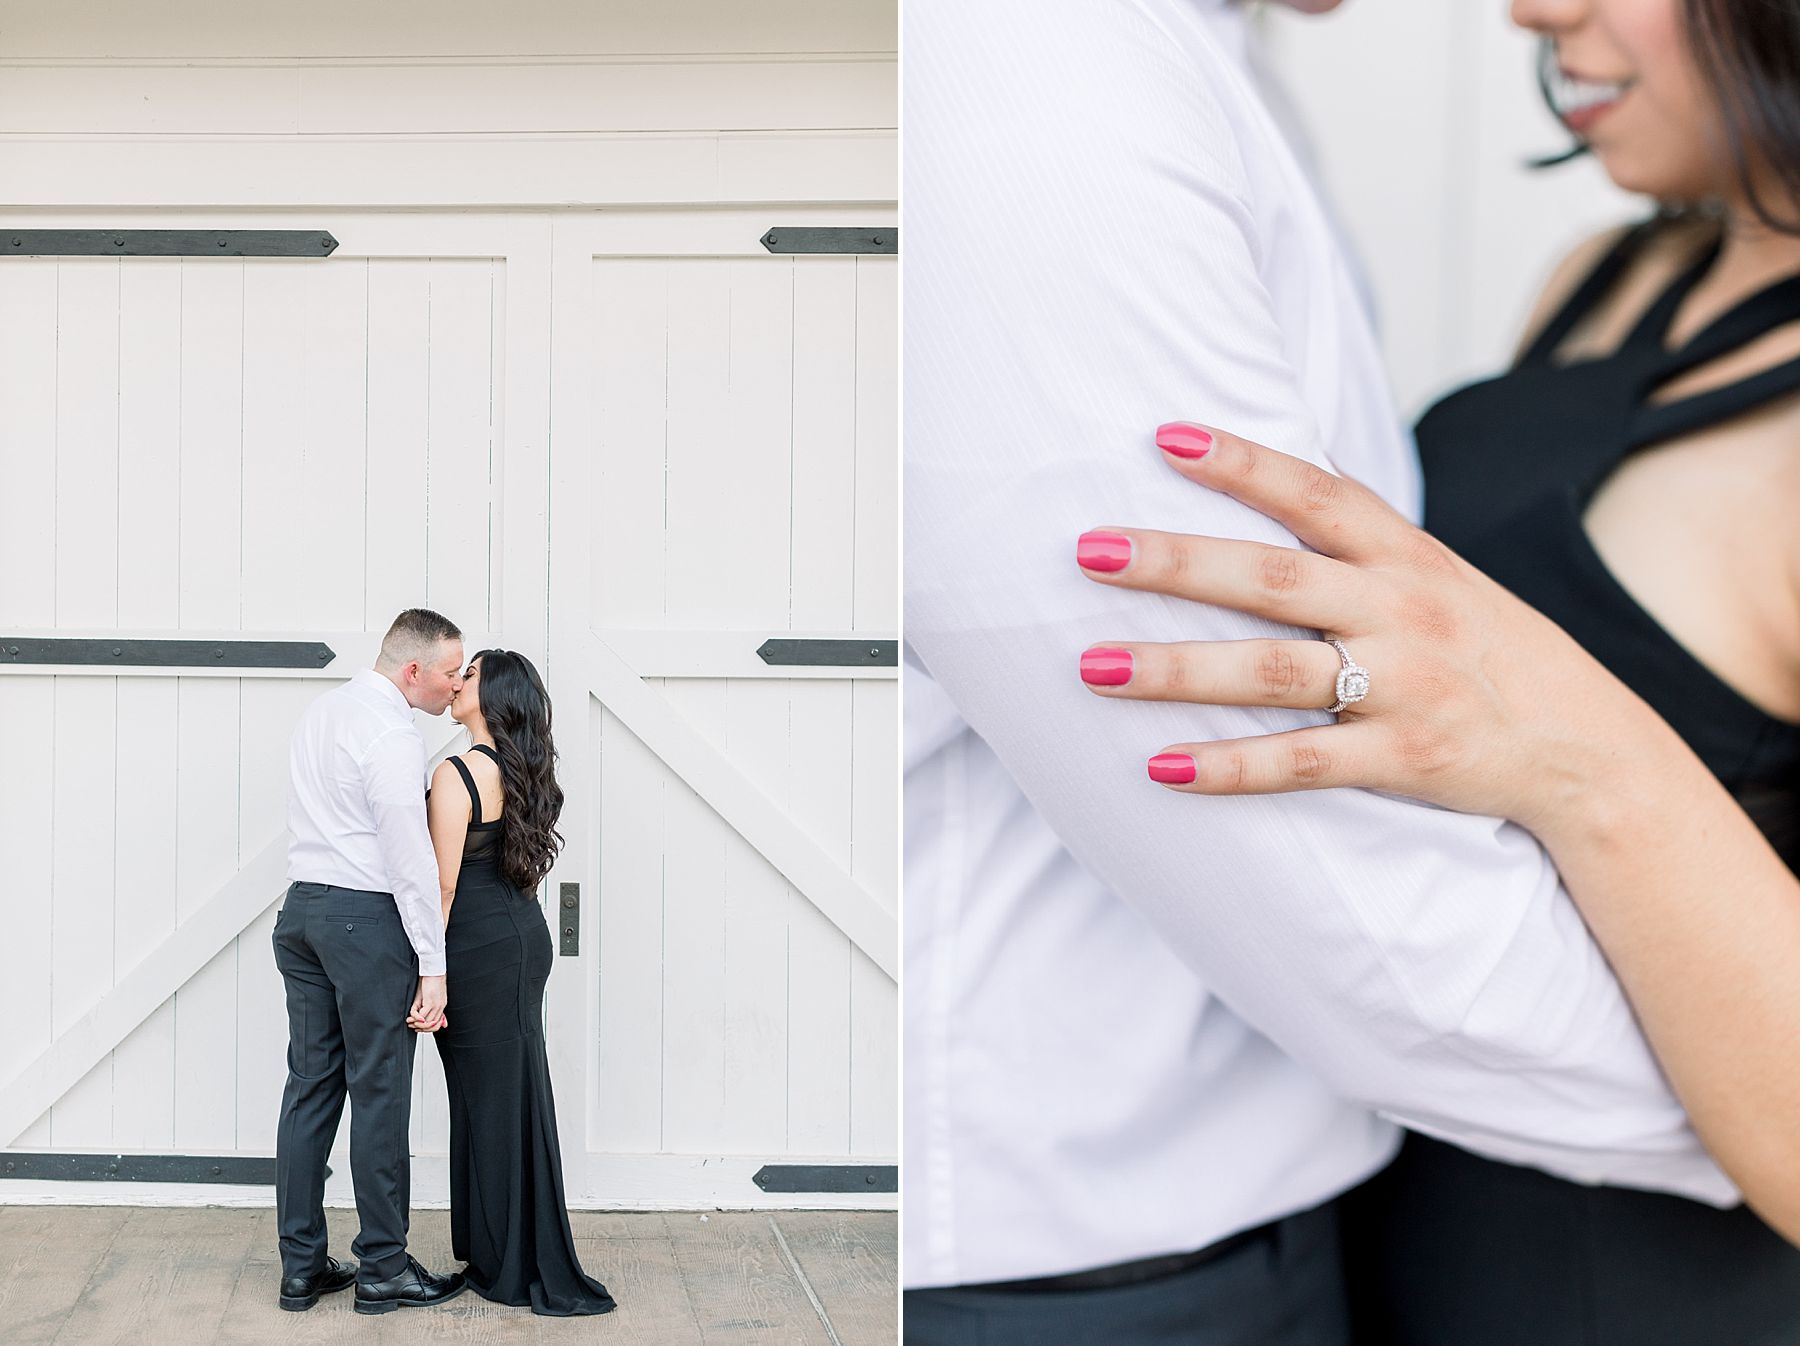 Old Sacramento Engagement Session - Downtown Sacramento Engagement Session - Black Tie Engagement Photos - Ashley Baumgartner - Sacramento Wedding Photographer_0012.jpg